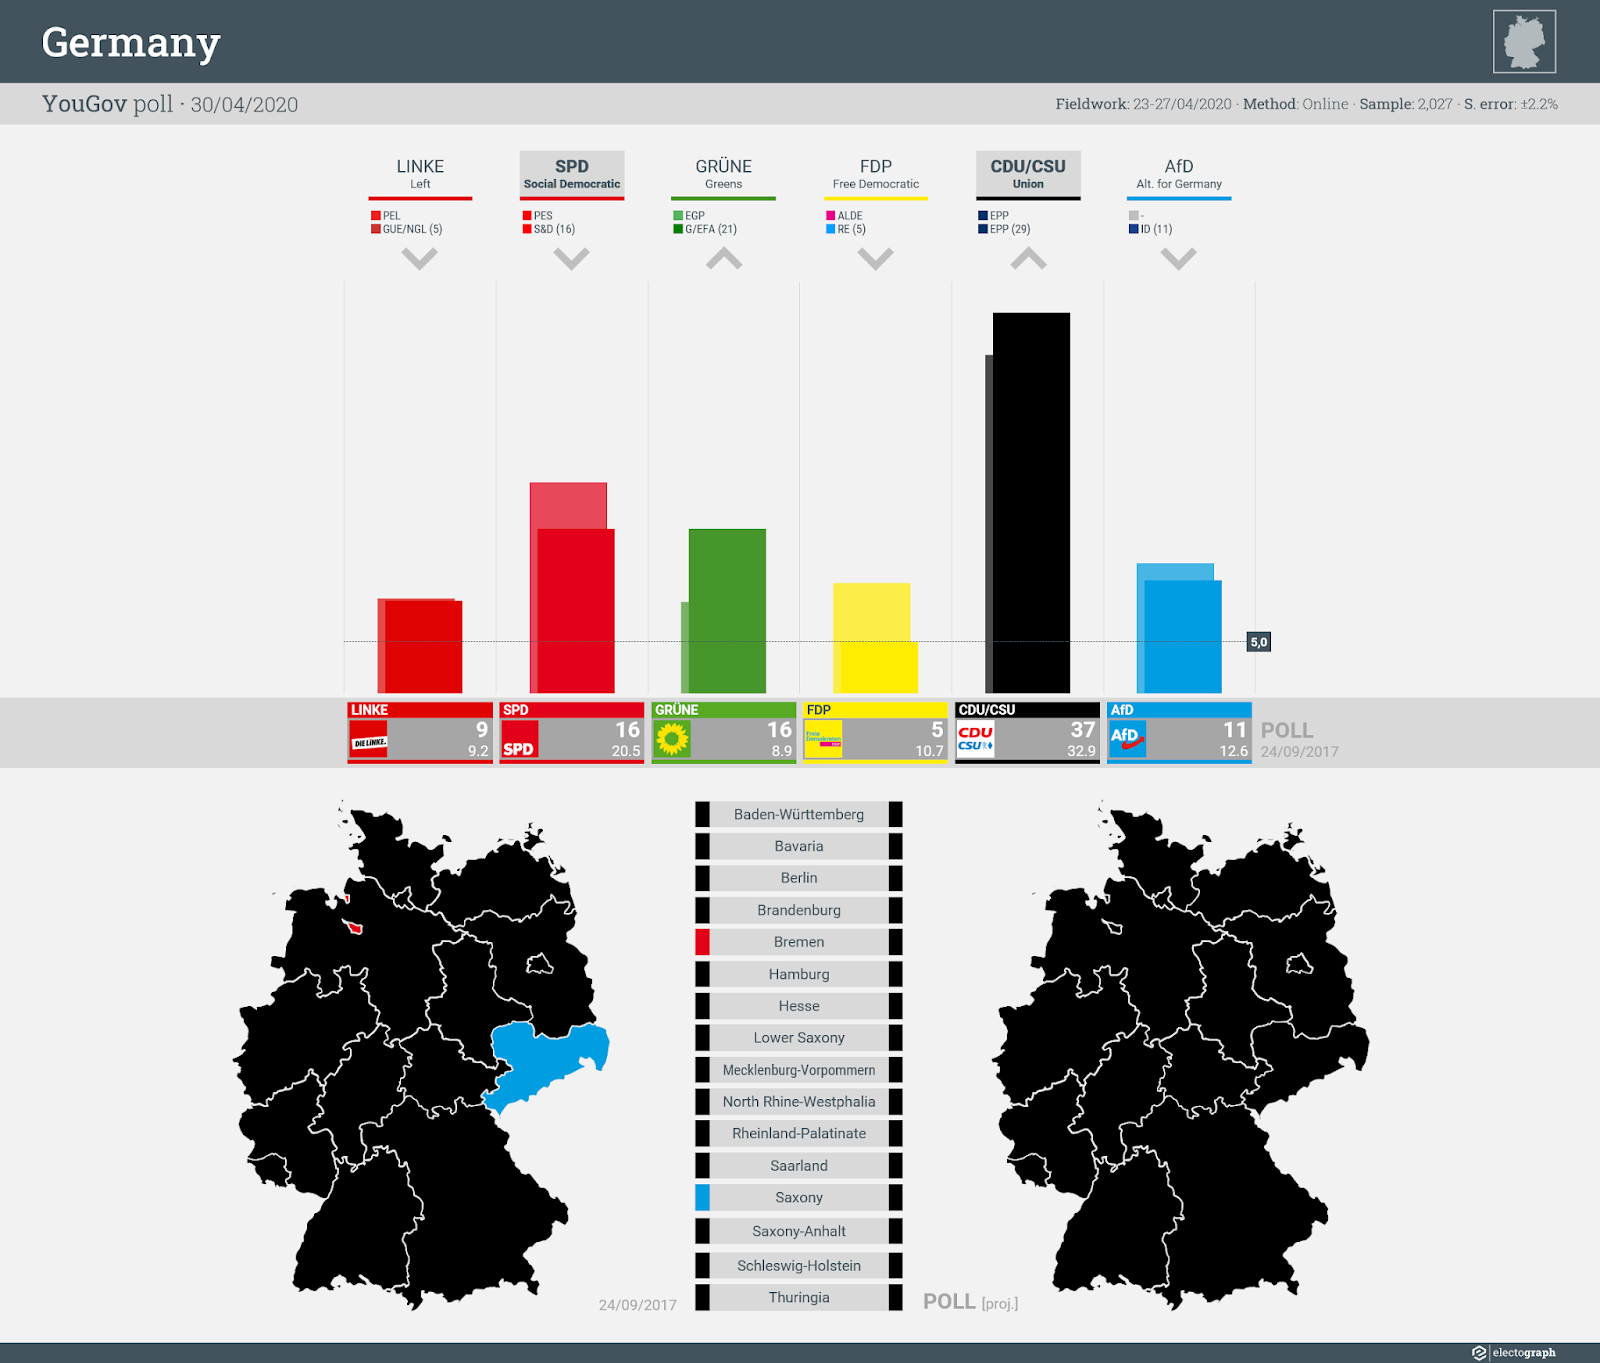 GERMANY: YouGov poll chart, 30 April 2020